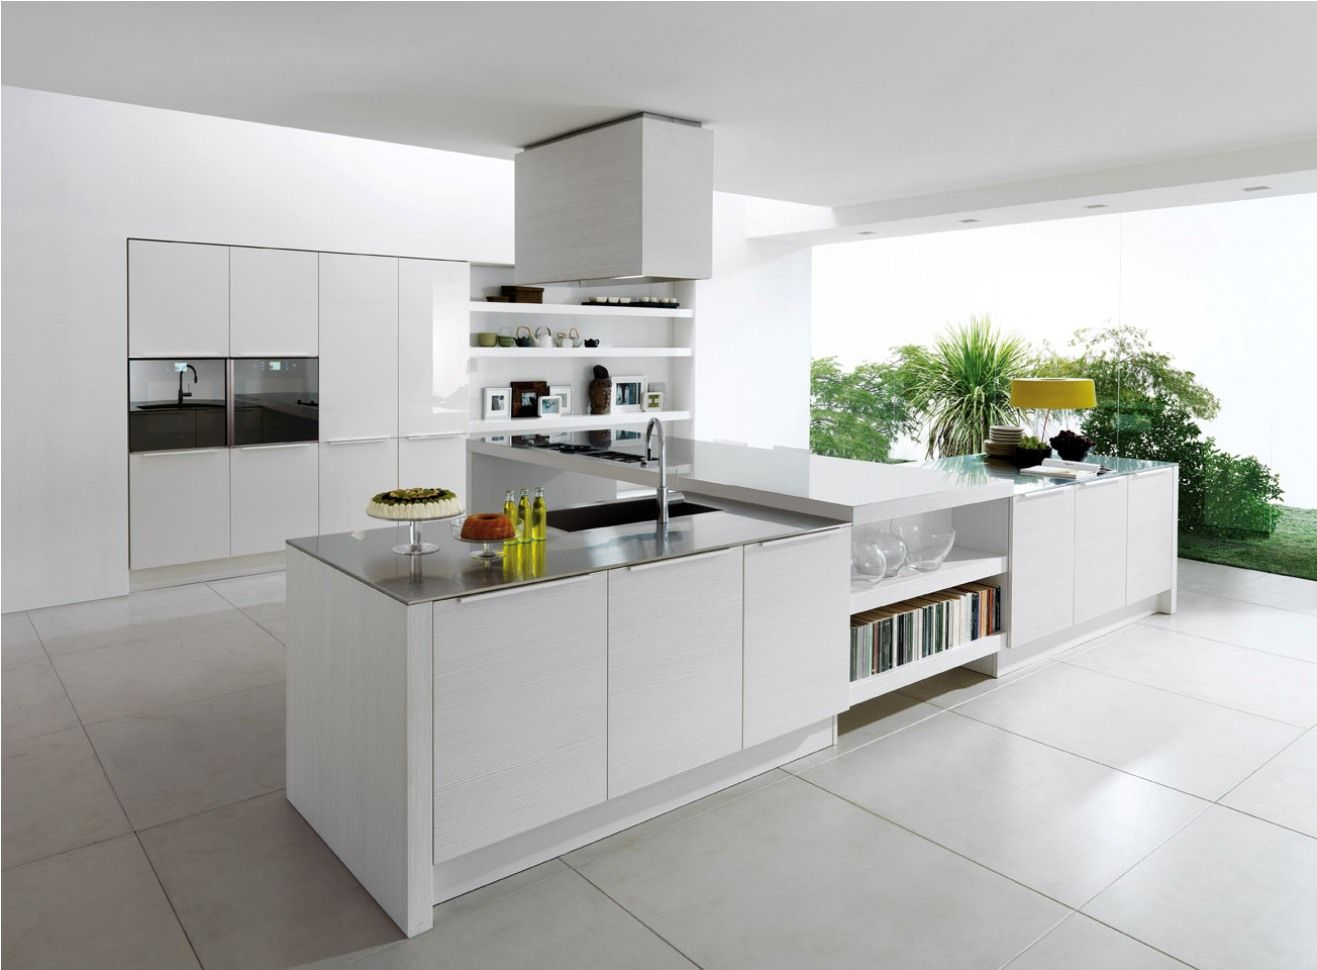 30 contemporary white kitchens ideas modern kitchen designs Kitchen design pictures modern